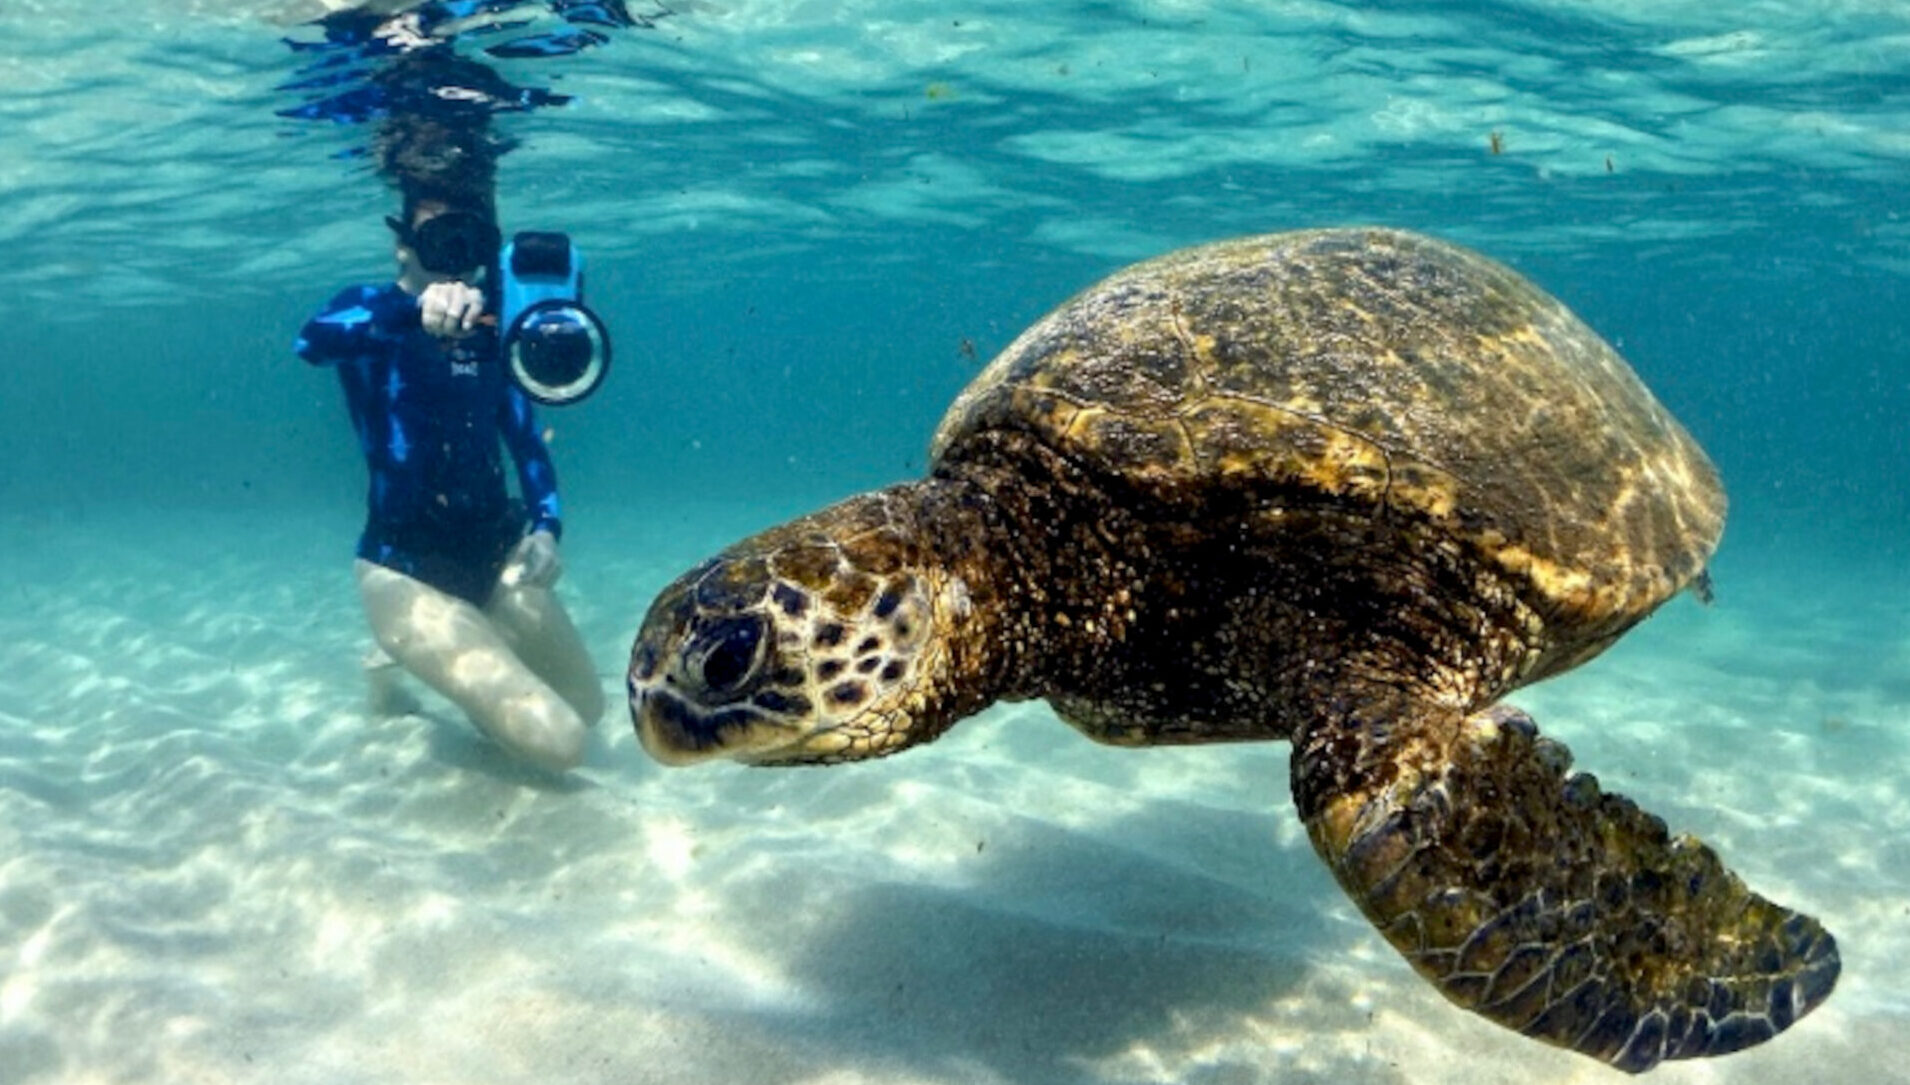 VIDEO: Shelly-Vision: Diver's Enchanting Ocean Footage Of Endangered Green Turtle